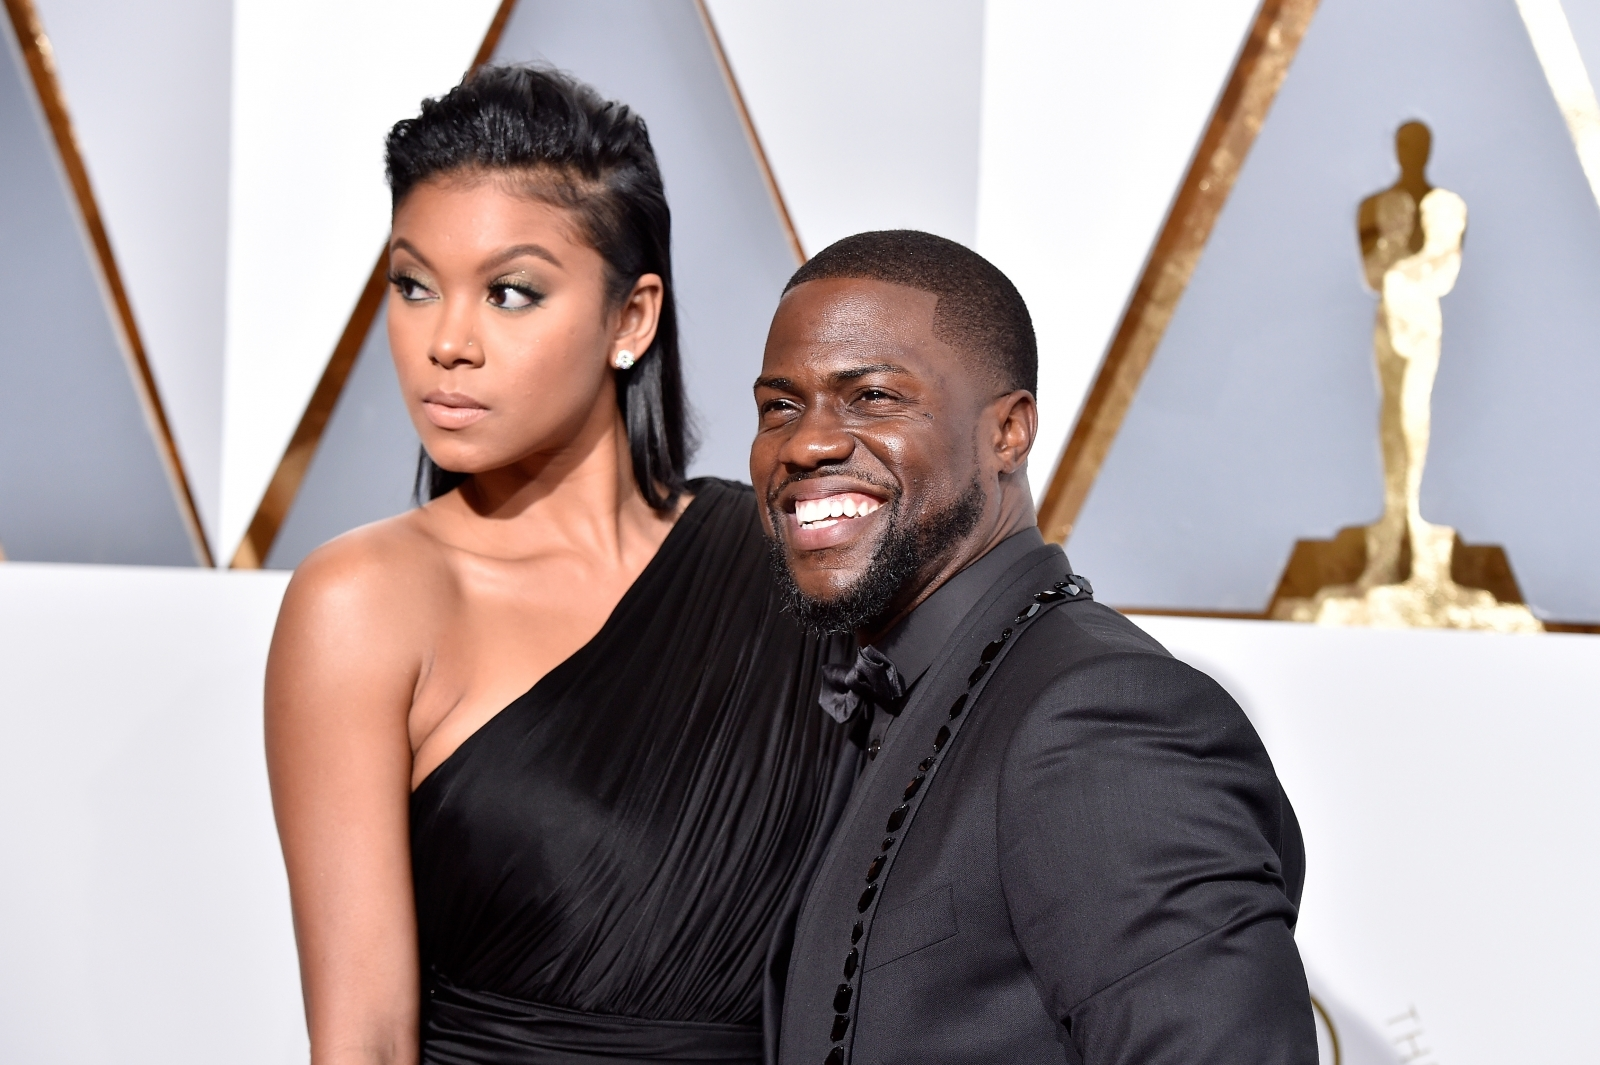 Kevin Hart And Wife Eniko Parrish Announce The Birth Of Son Kenzo